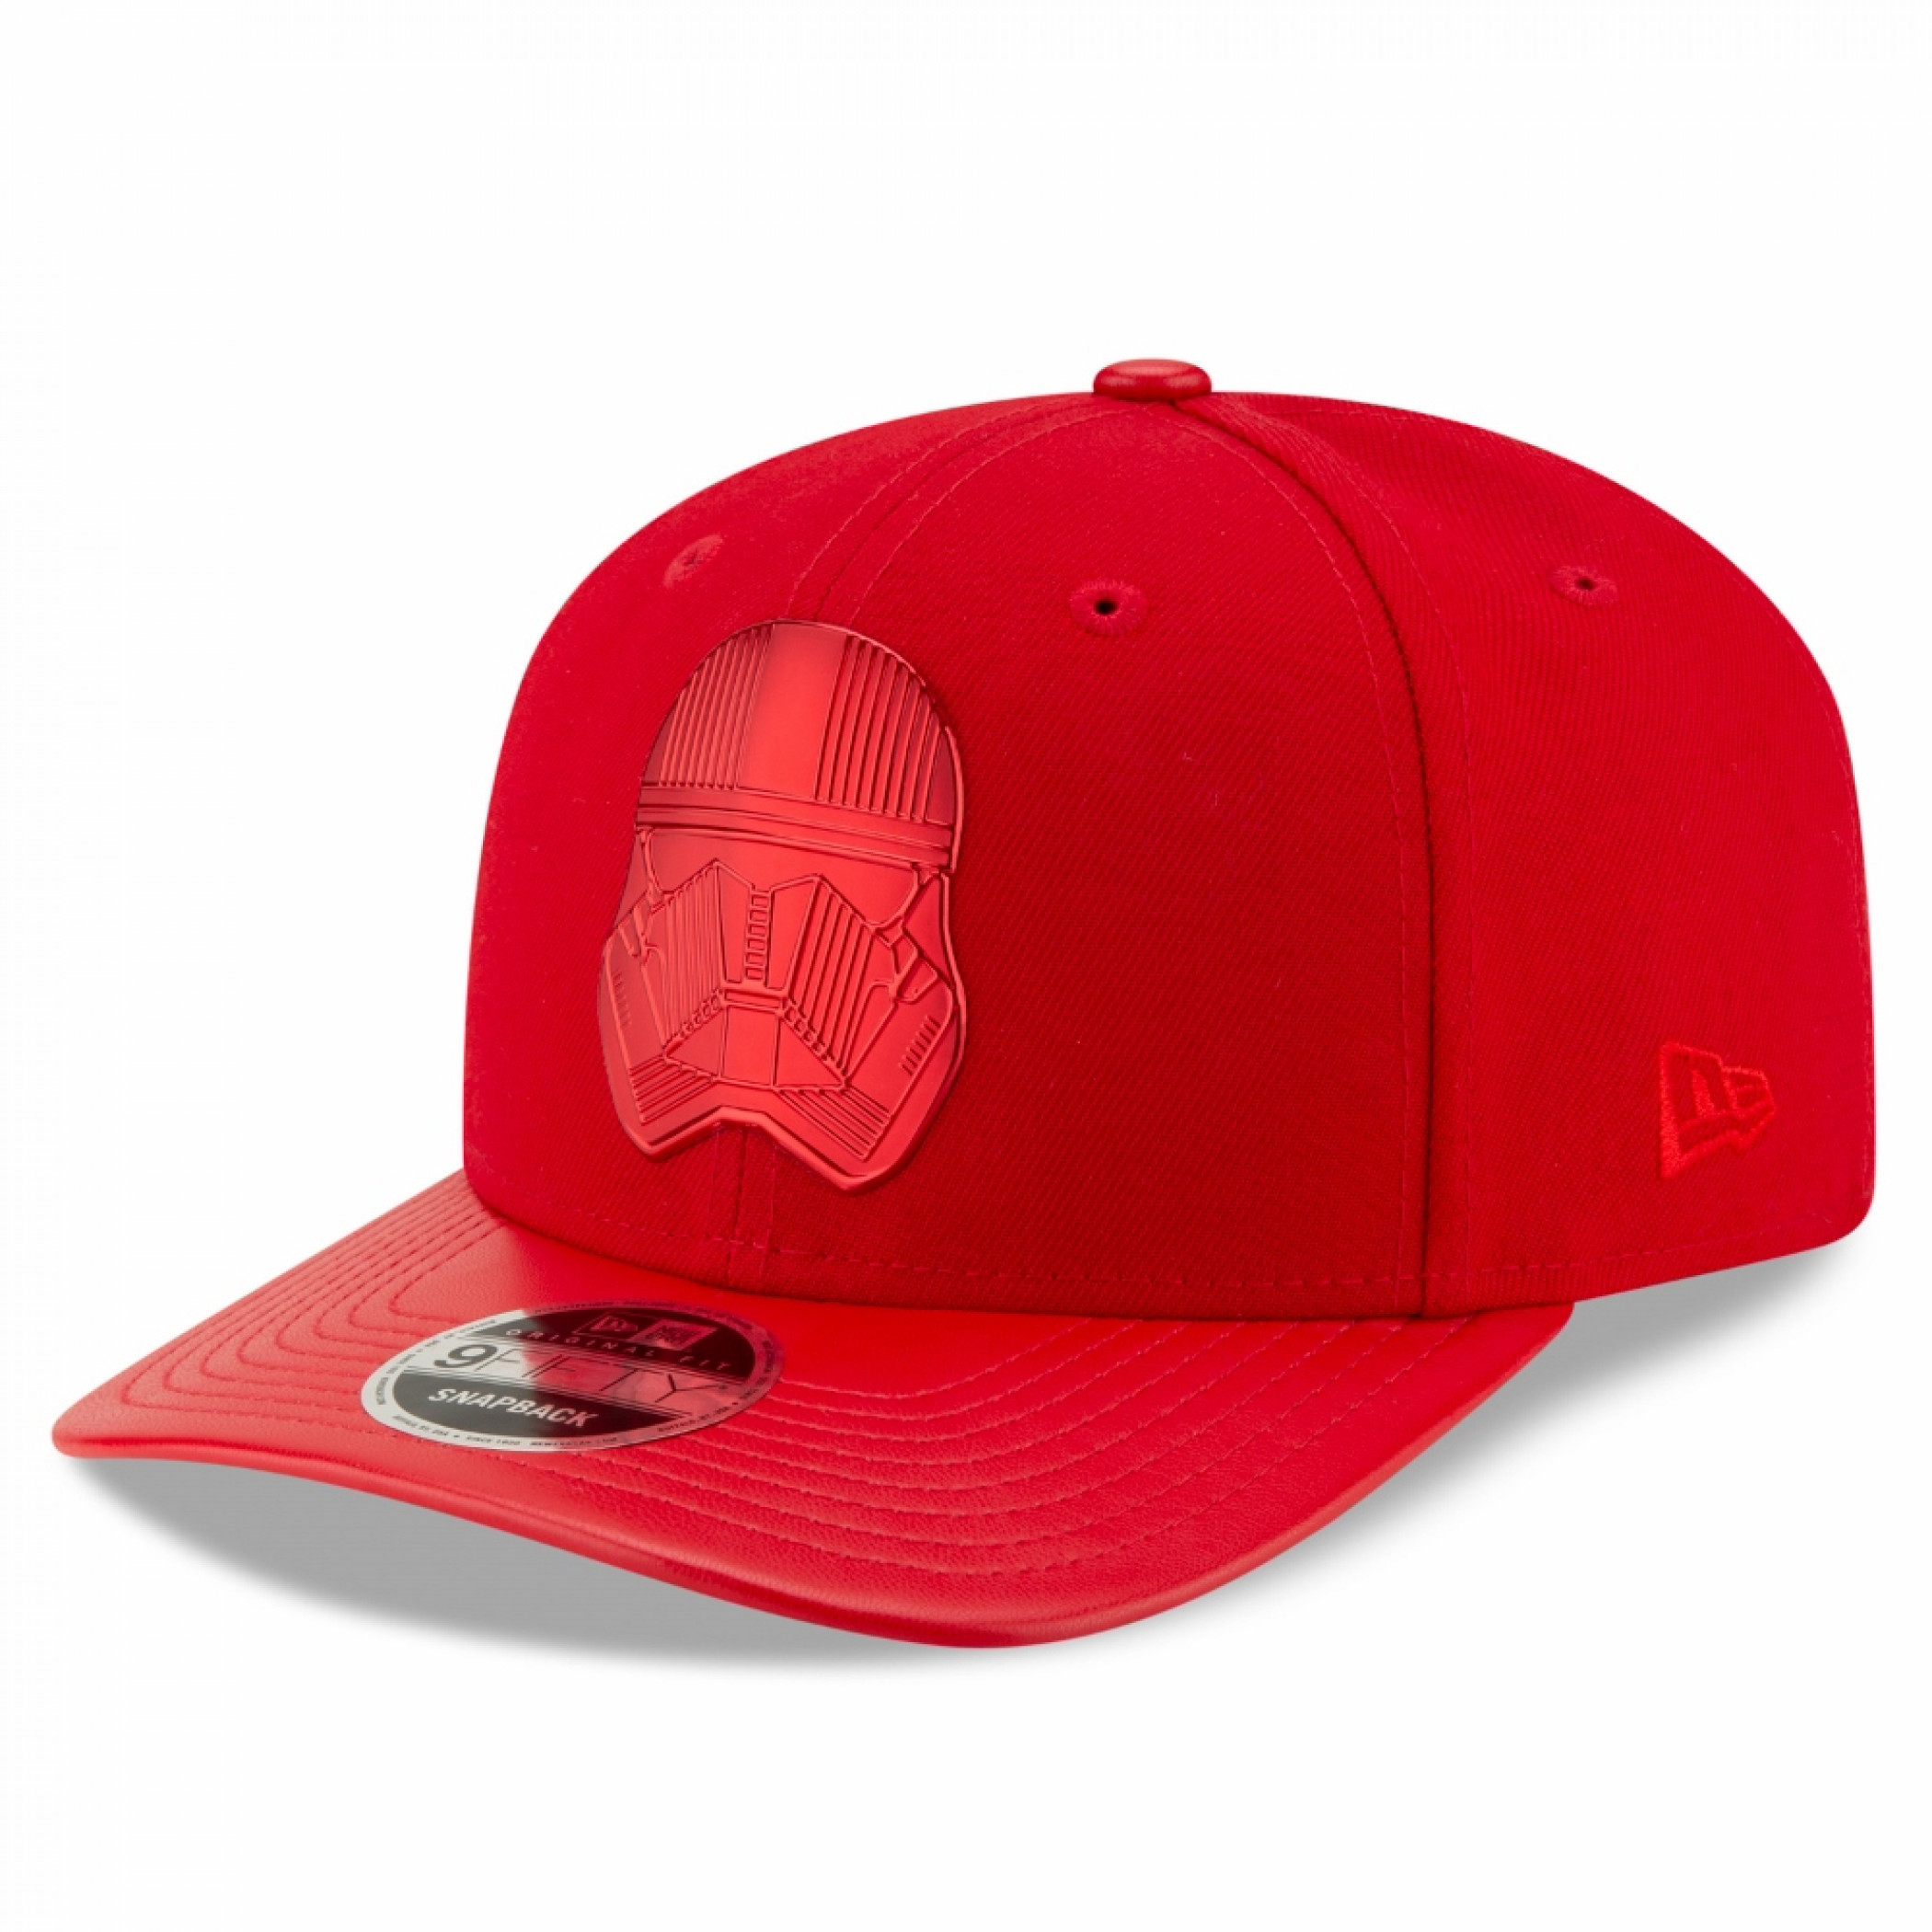 Star Wars Red Sith Troopers New Era 9Fifty Adjustable Hat